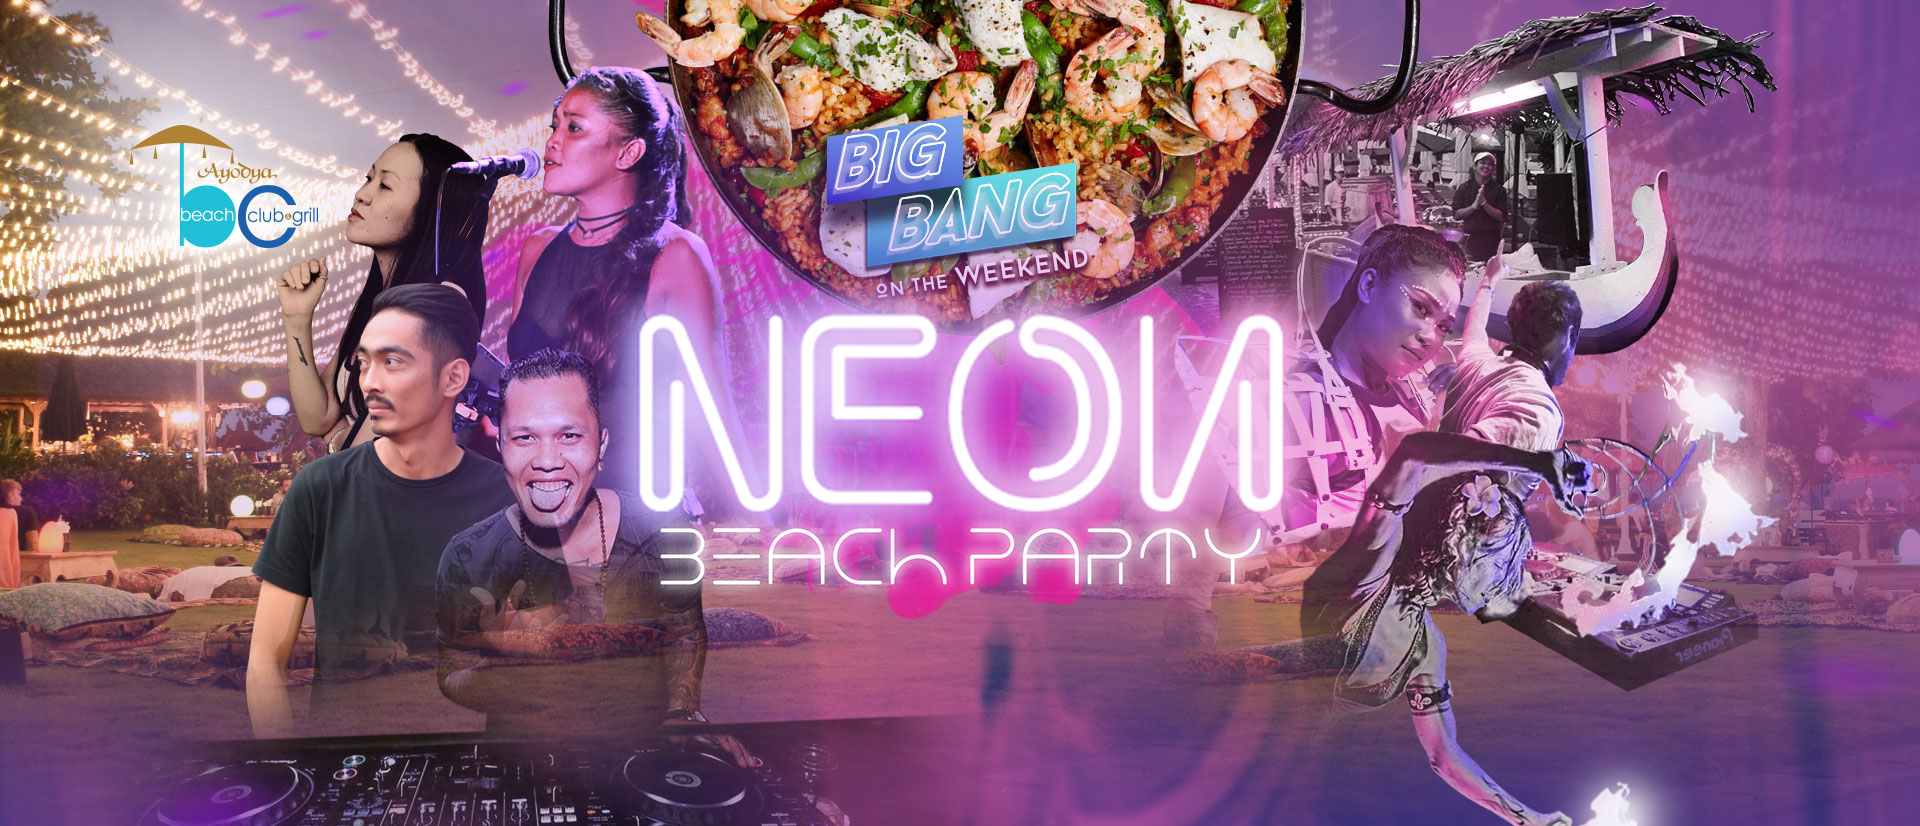 Neon Beach Party - BIG BANG on The Weekend